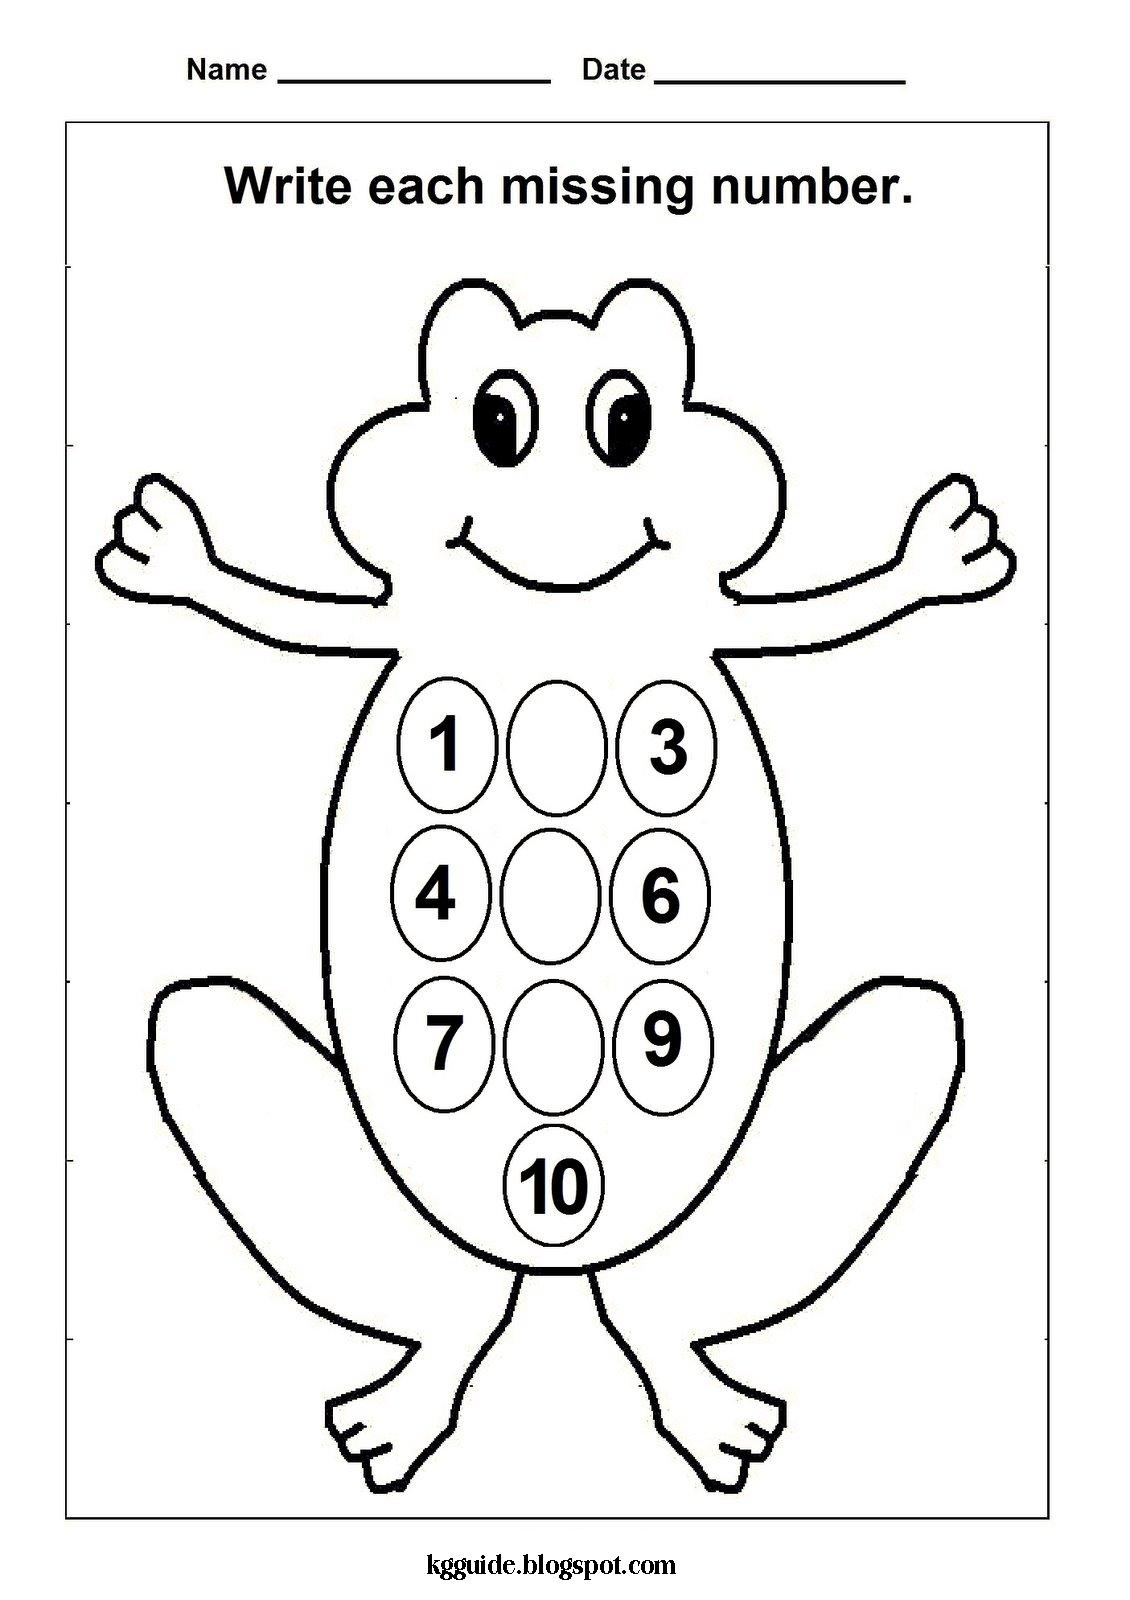 Line Art Guide : Numbers to color clipart suggest